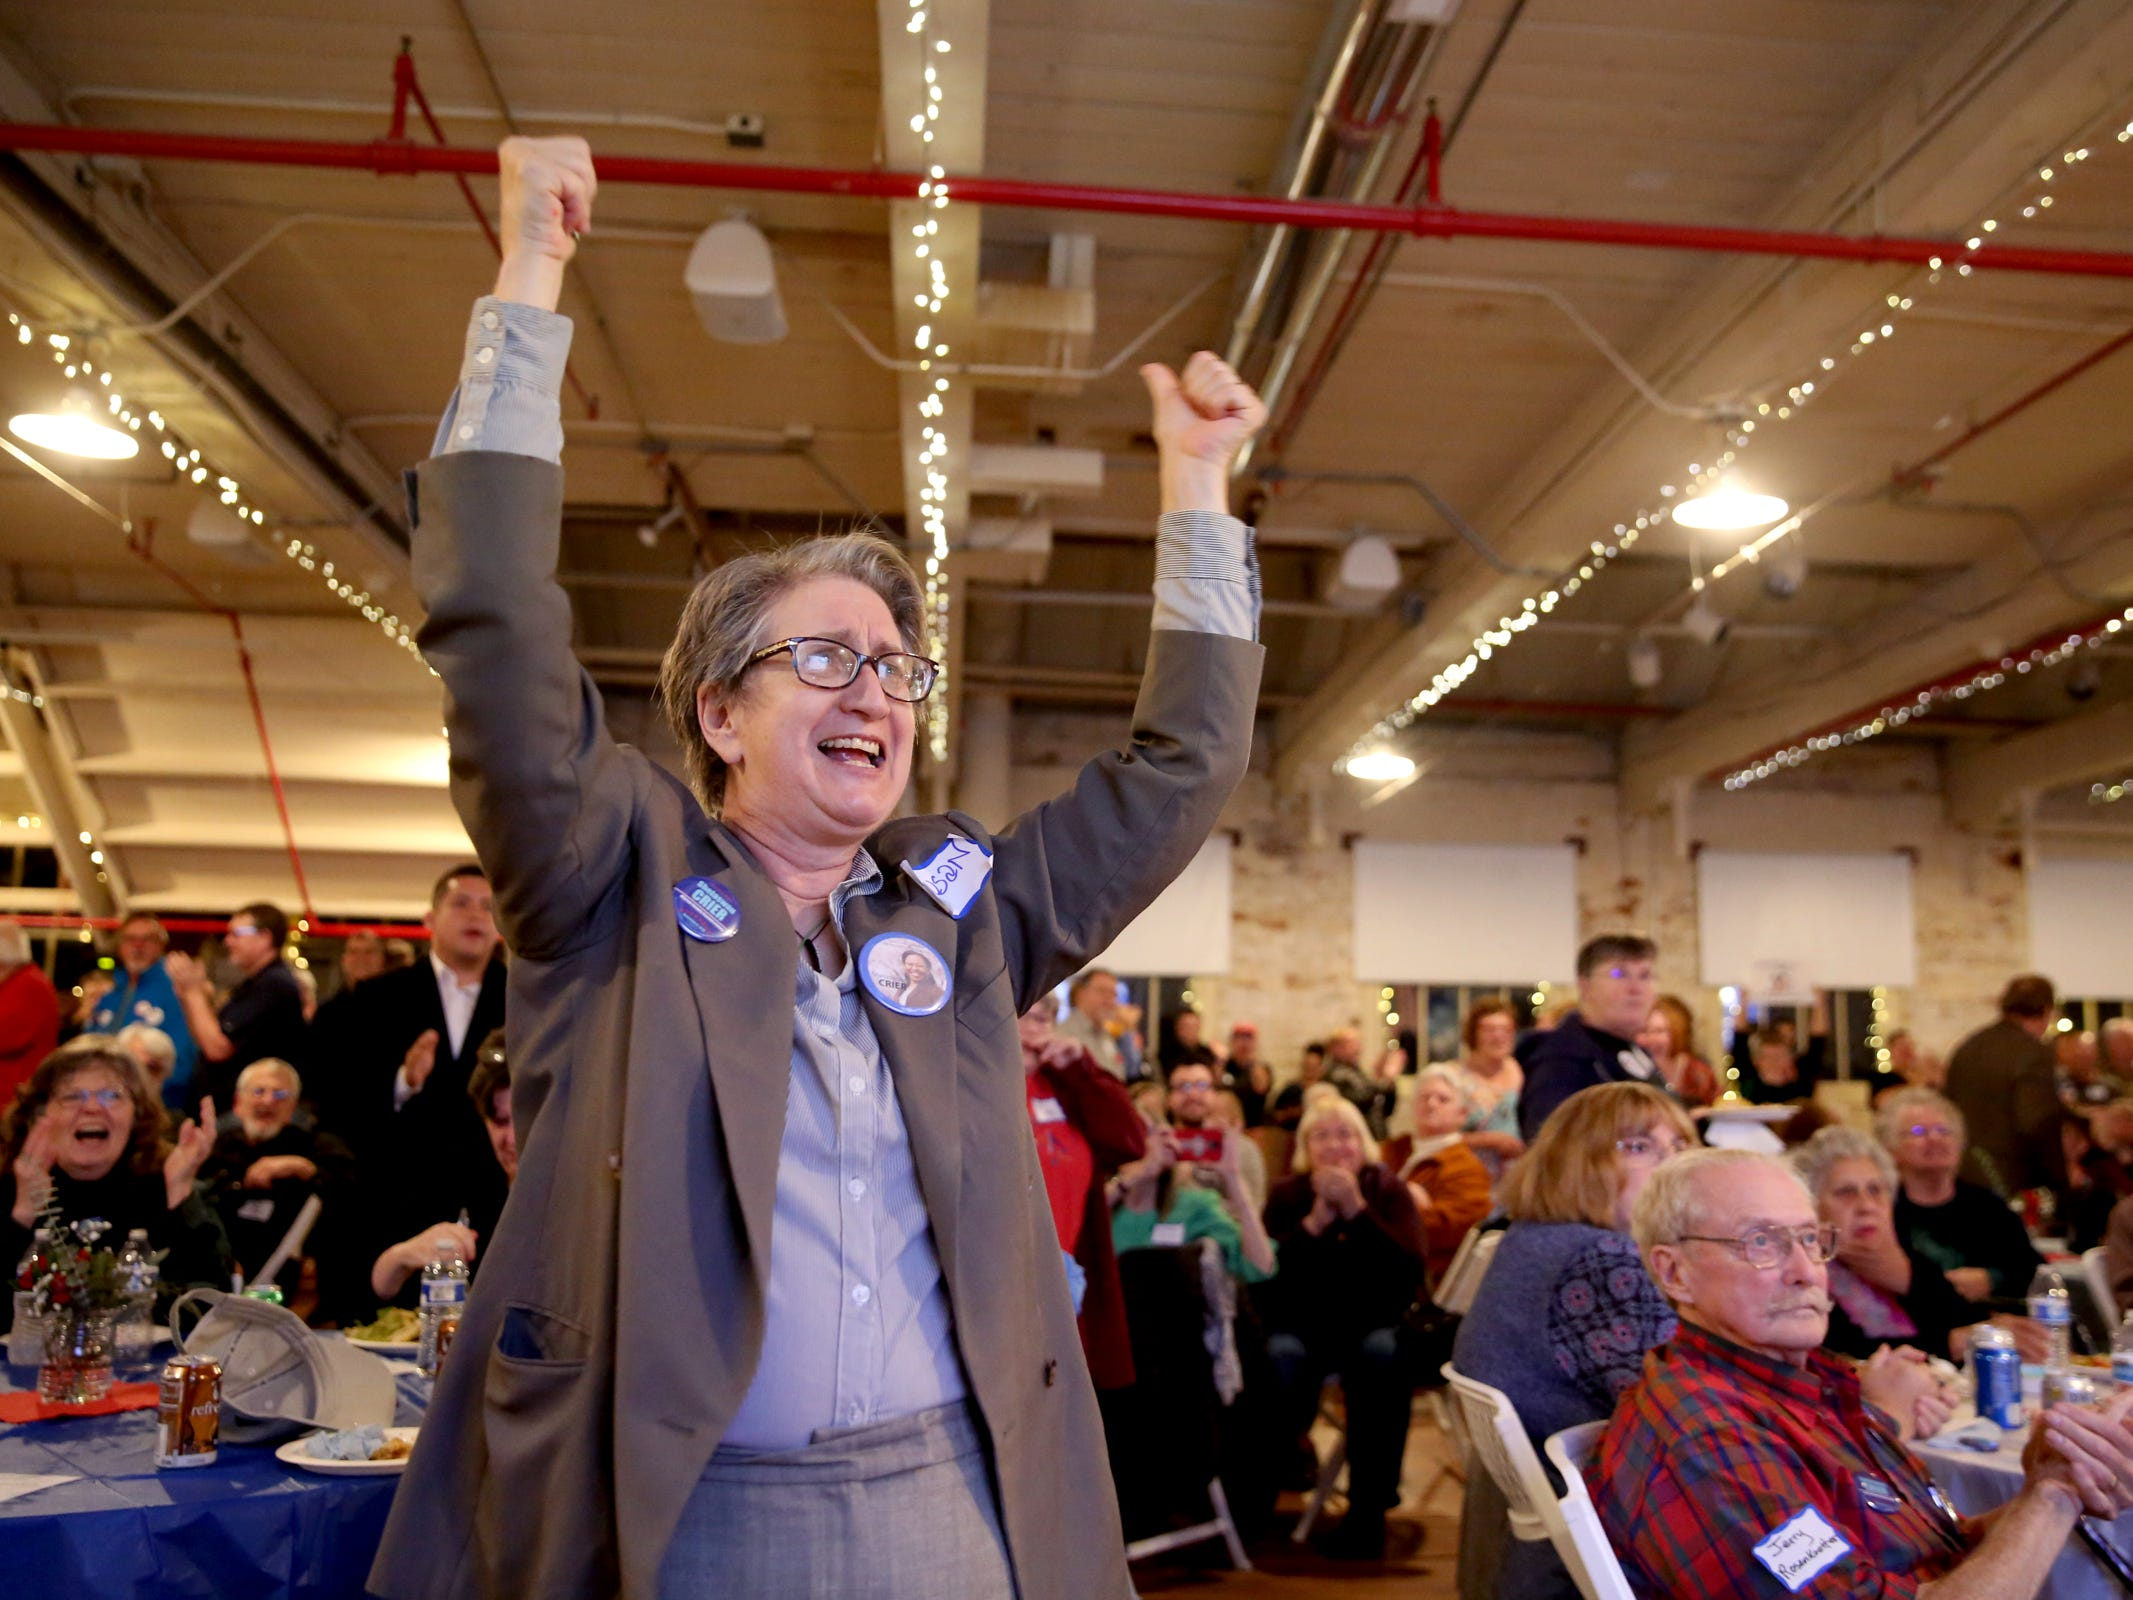 Susan Smith, the campaign manager for Shelaswau Crier, a candidate for Marion County Commissioner, cheers as initial results for Oregon ballot measures are posted during an election night party hosted by Marion County Democrats and Polk County Democrats at the Willamette Heritage Center in Salem on Tuesday, Nov. 6, 2018.